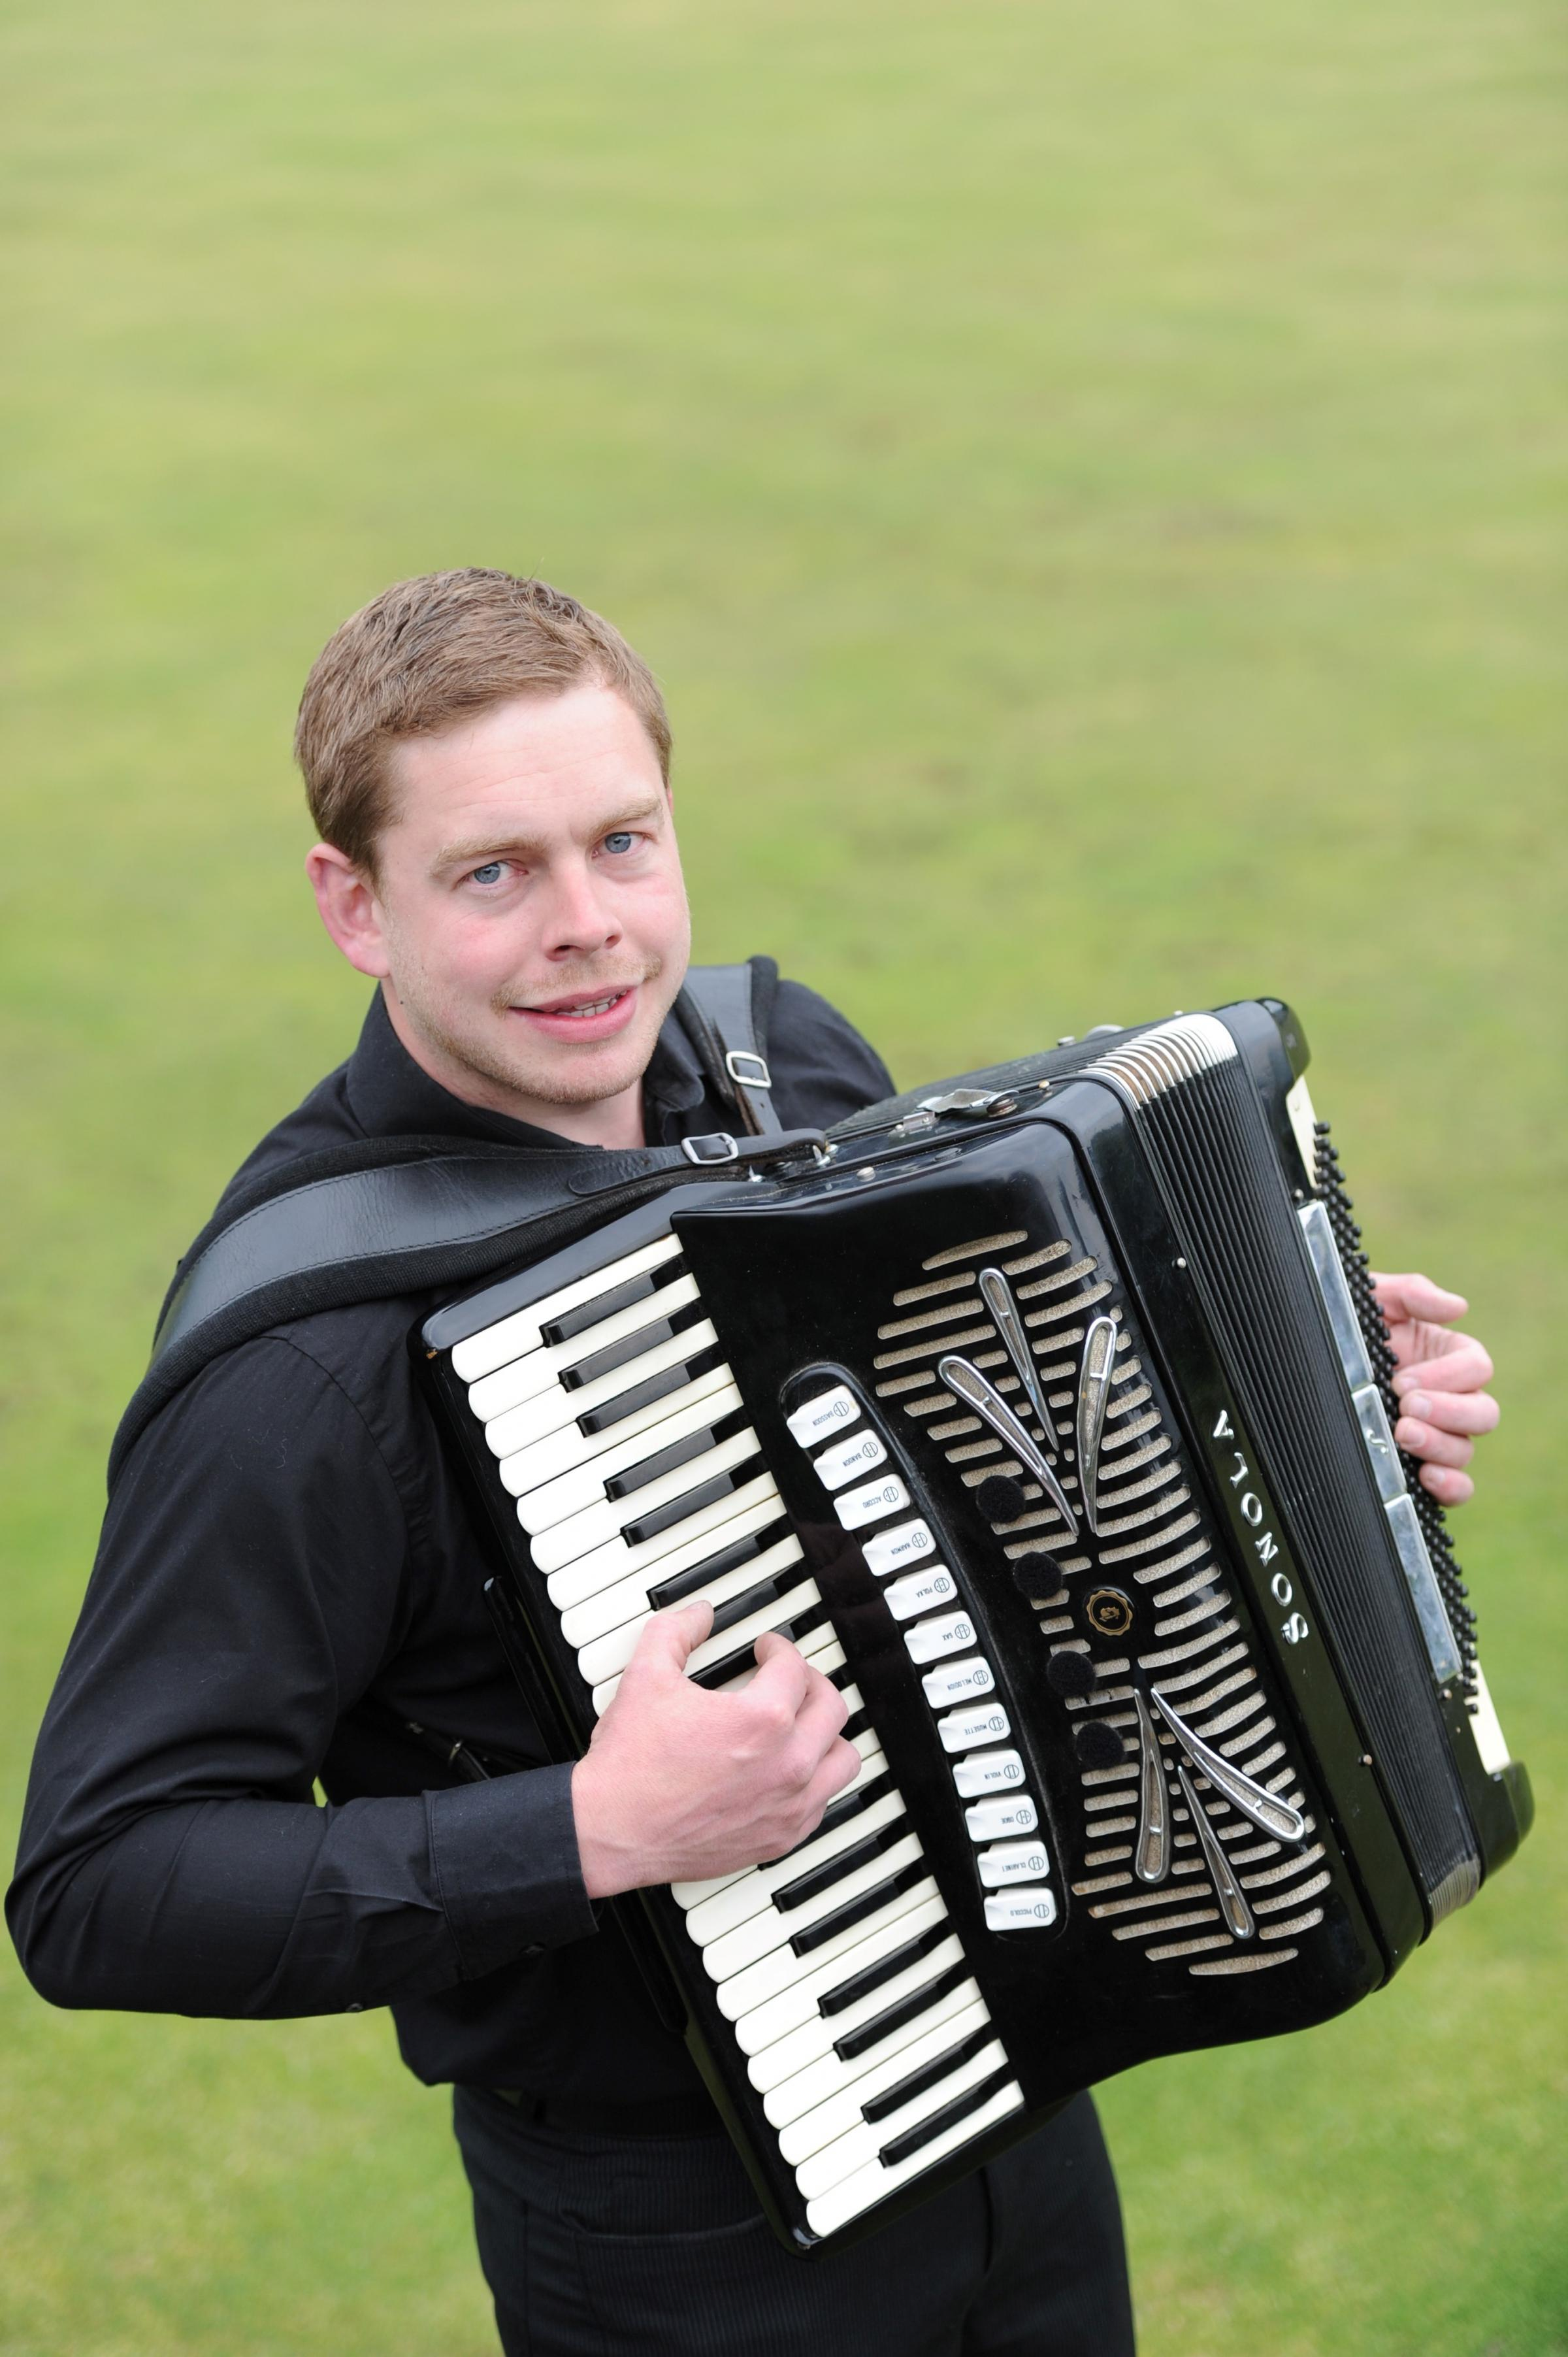 IT'S THE WEEKEND: Music is the key at Gwent Accordion Club